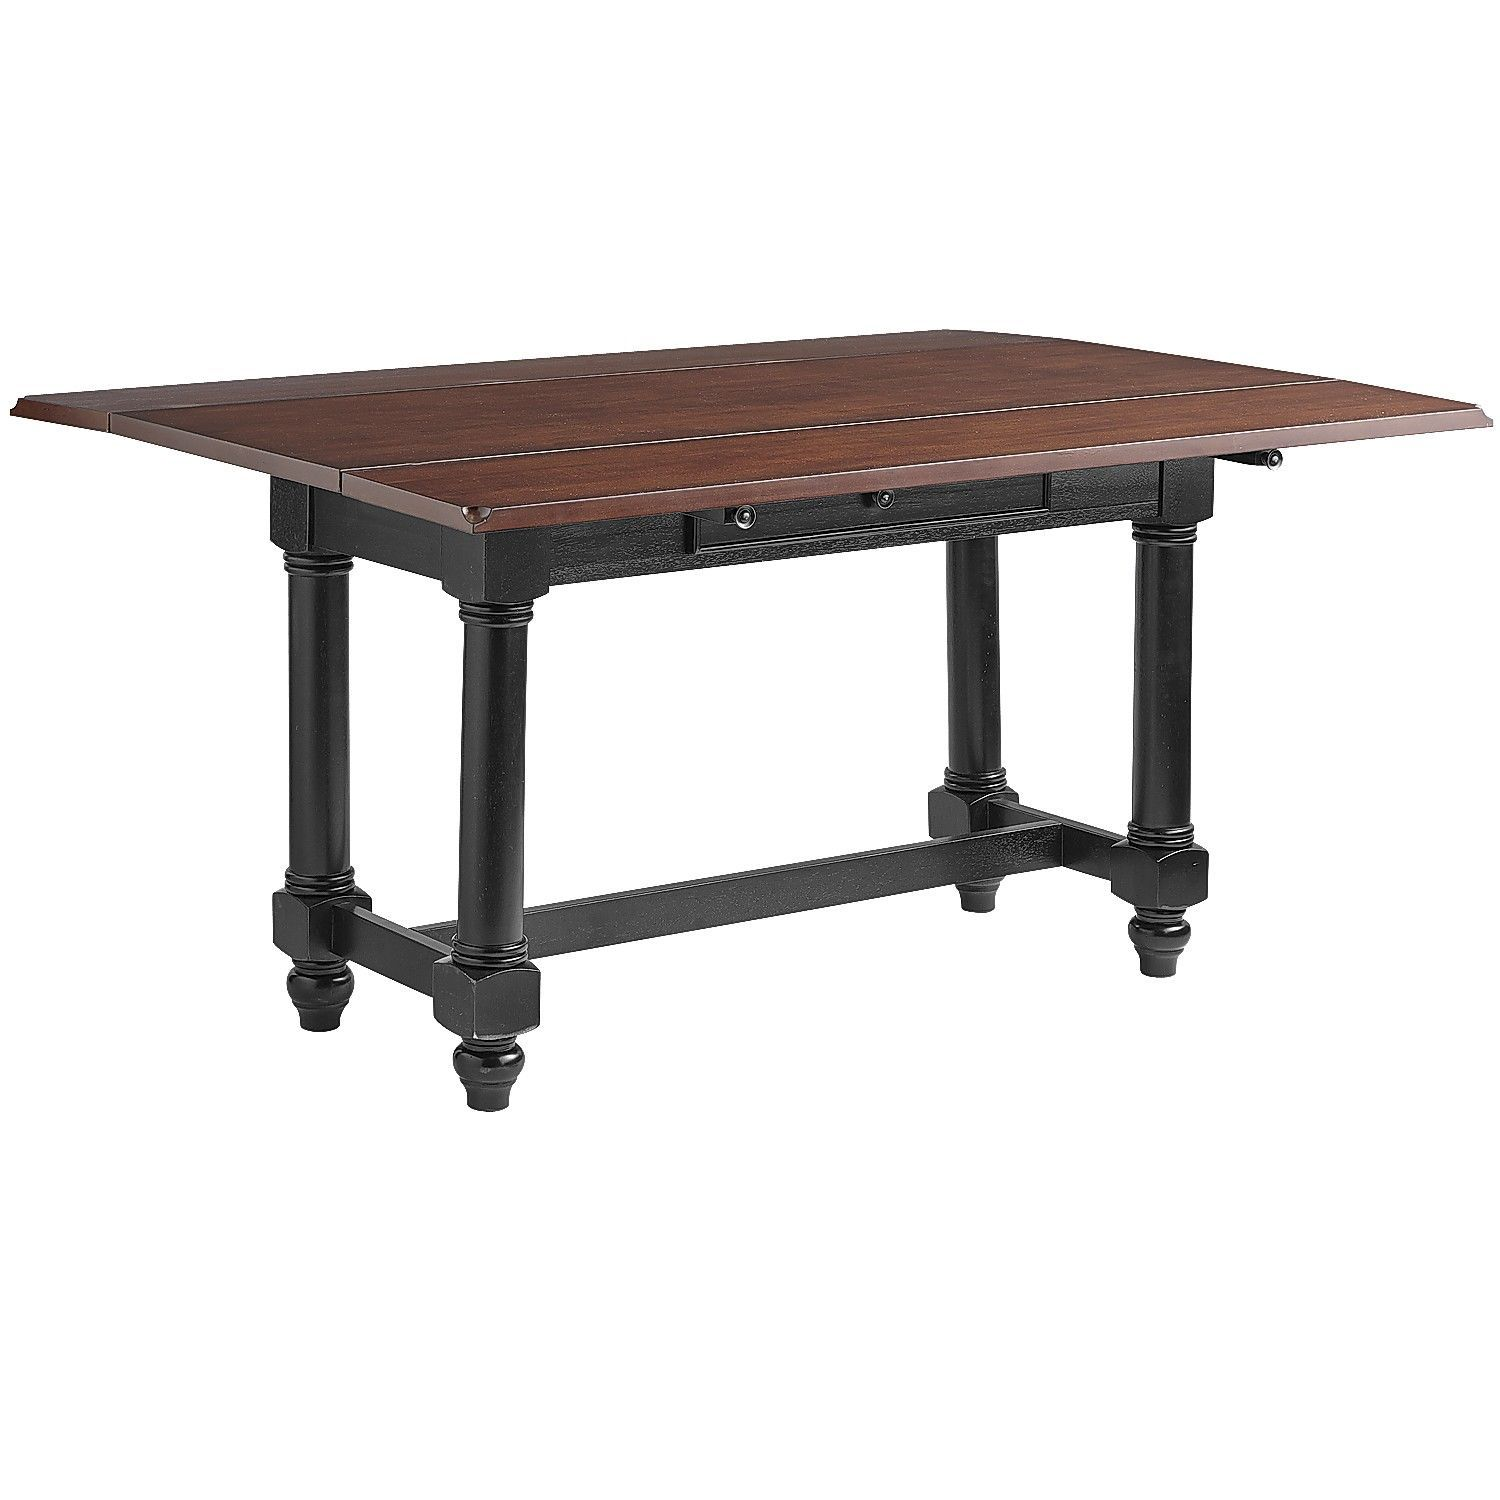 Blake Drop Leaf Table - Rubbed Black | Pier 1 Imports | 4626 43rd ...